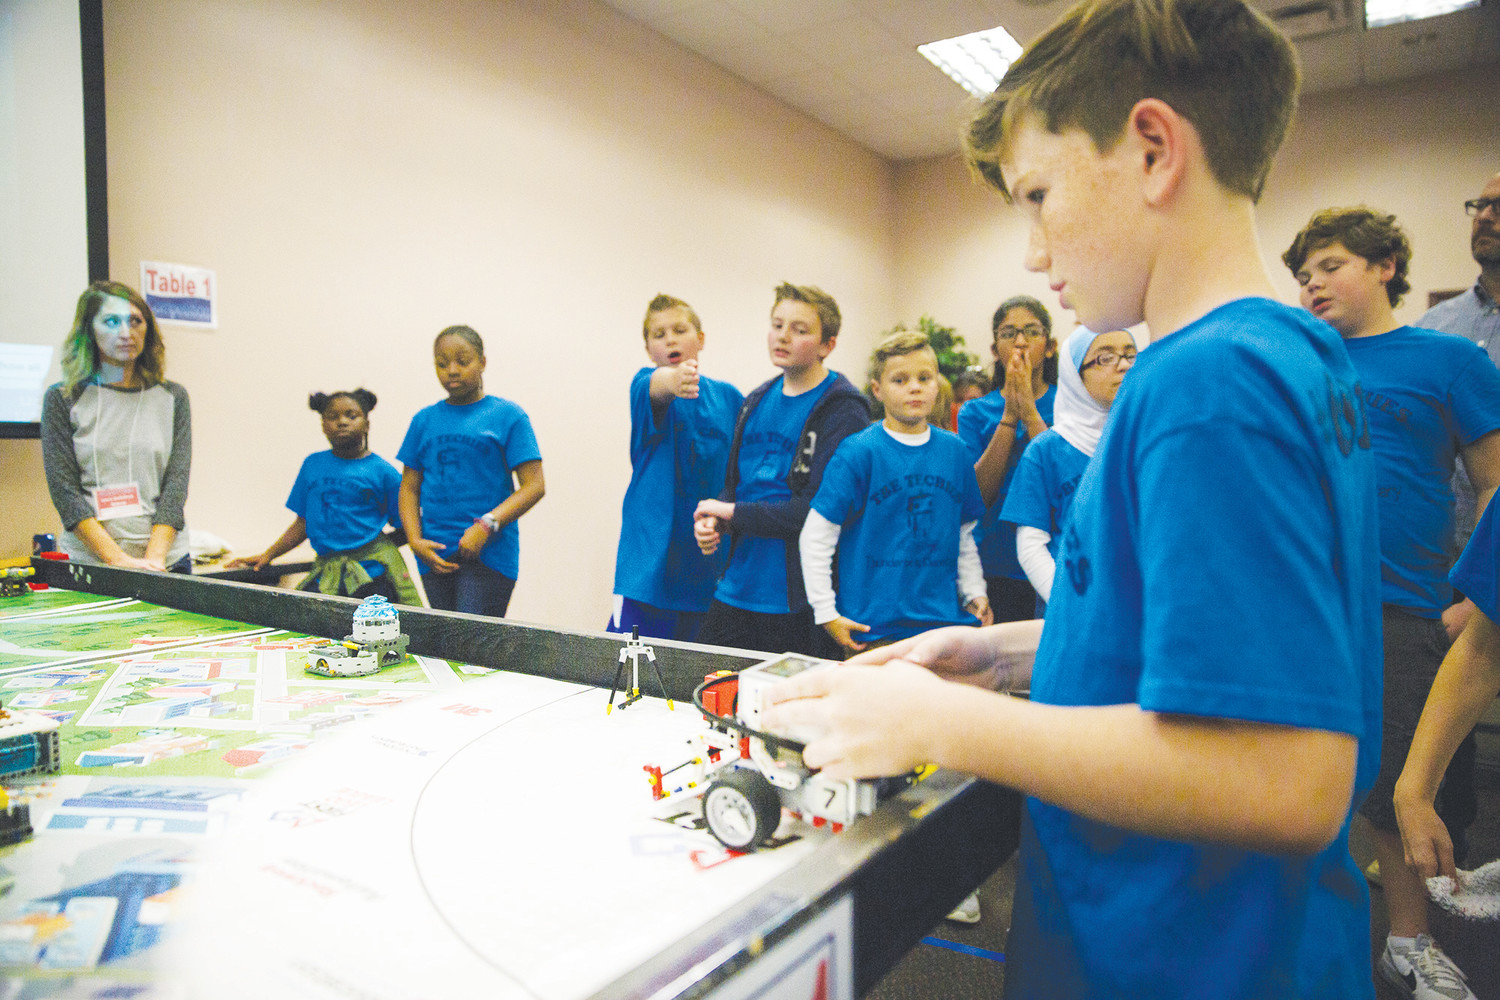 Students from the Thunderbolt Elementary robotics team prepare for head-to-head competition last Wednesday during the Robo Thrasher One qualifying event that determines which teams will move on to the regional level of competition.